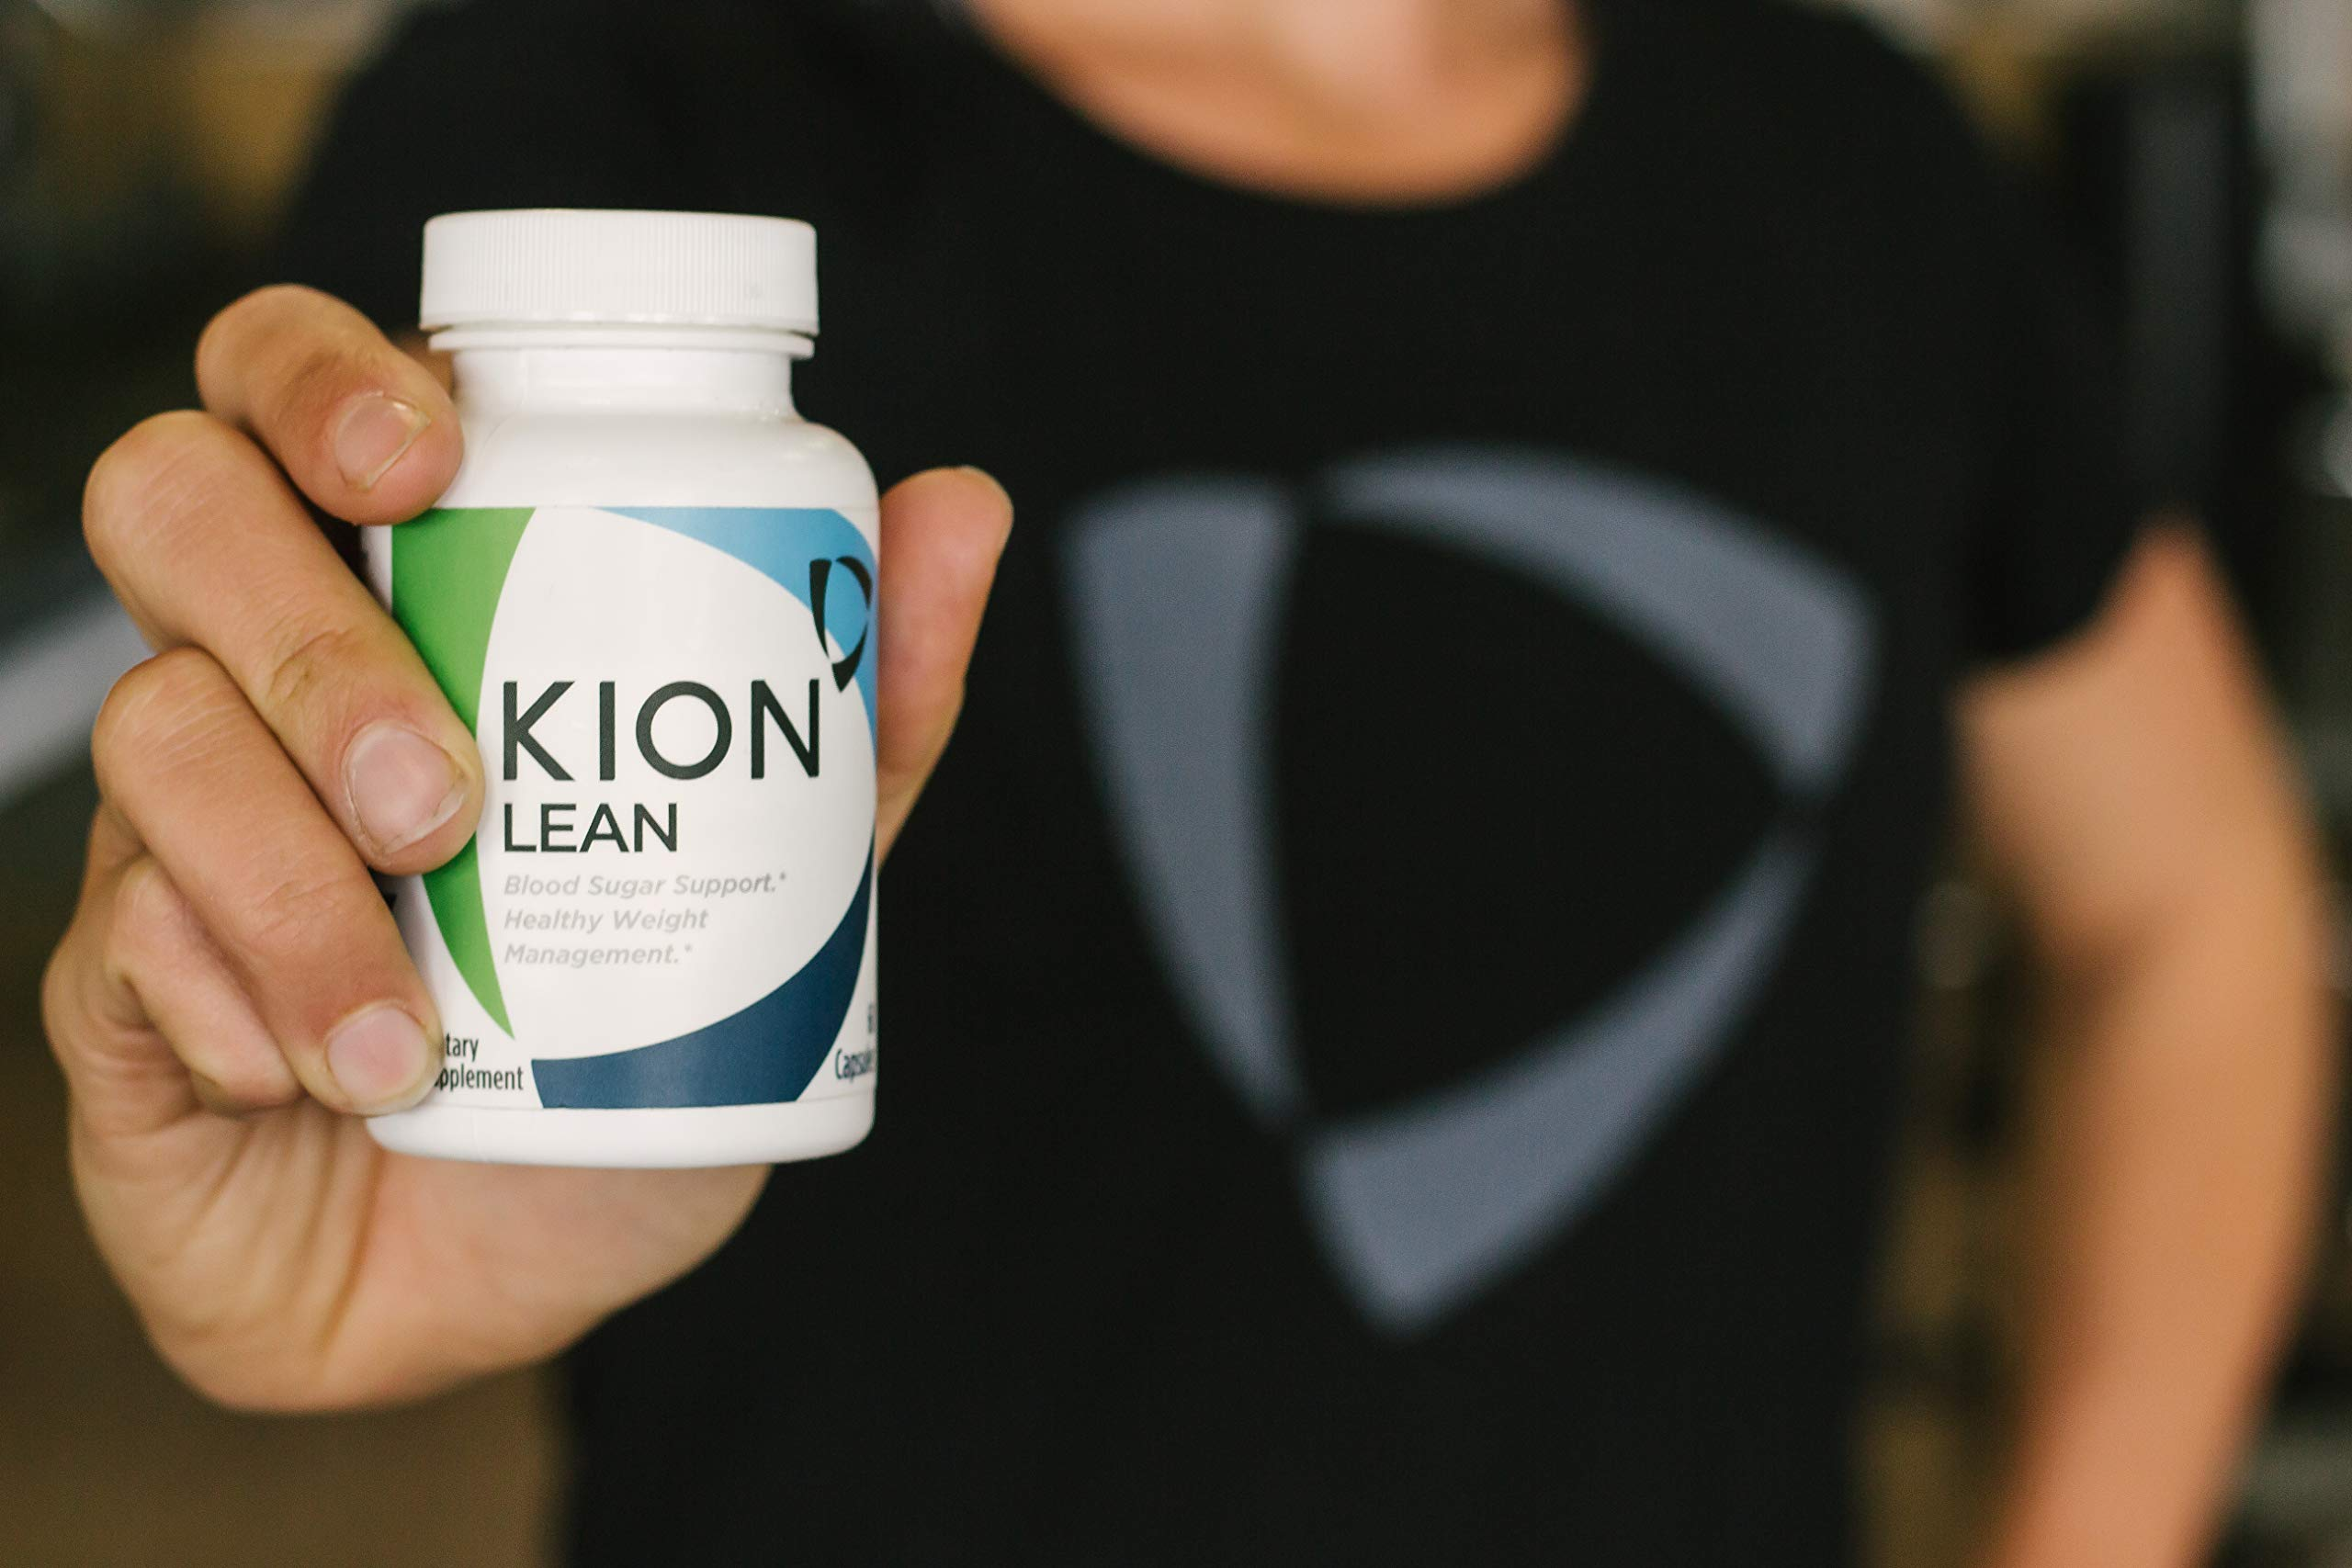 Kion Lean | Supports Weight Management, Liver Health, Blood Sugar Regulation, Healthy Body Fat Levels, and Longevity | Contains Bitter Melon (Glycostat) and Rock Lotus (Kingsun) | 30 Servings by Kion (Image #6)